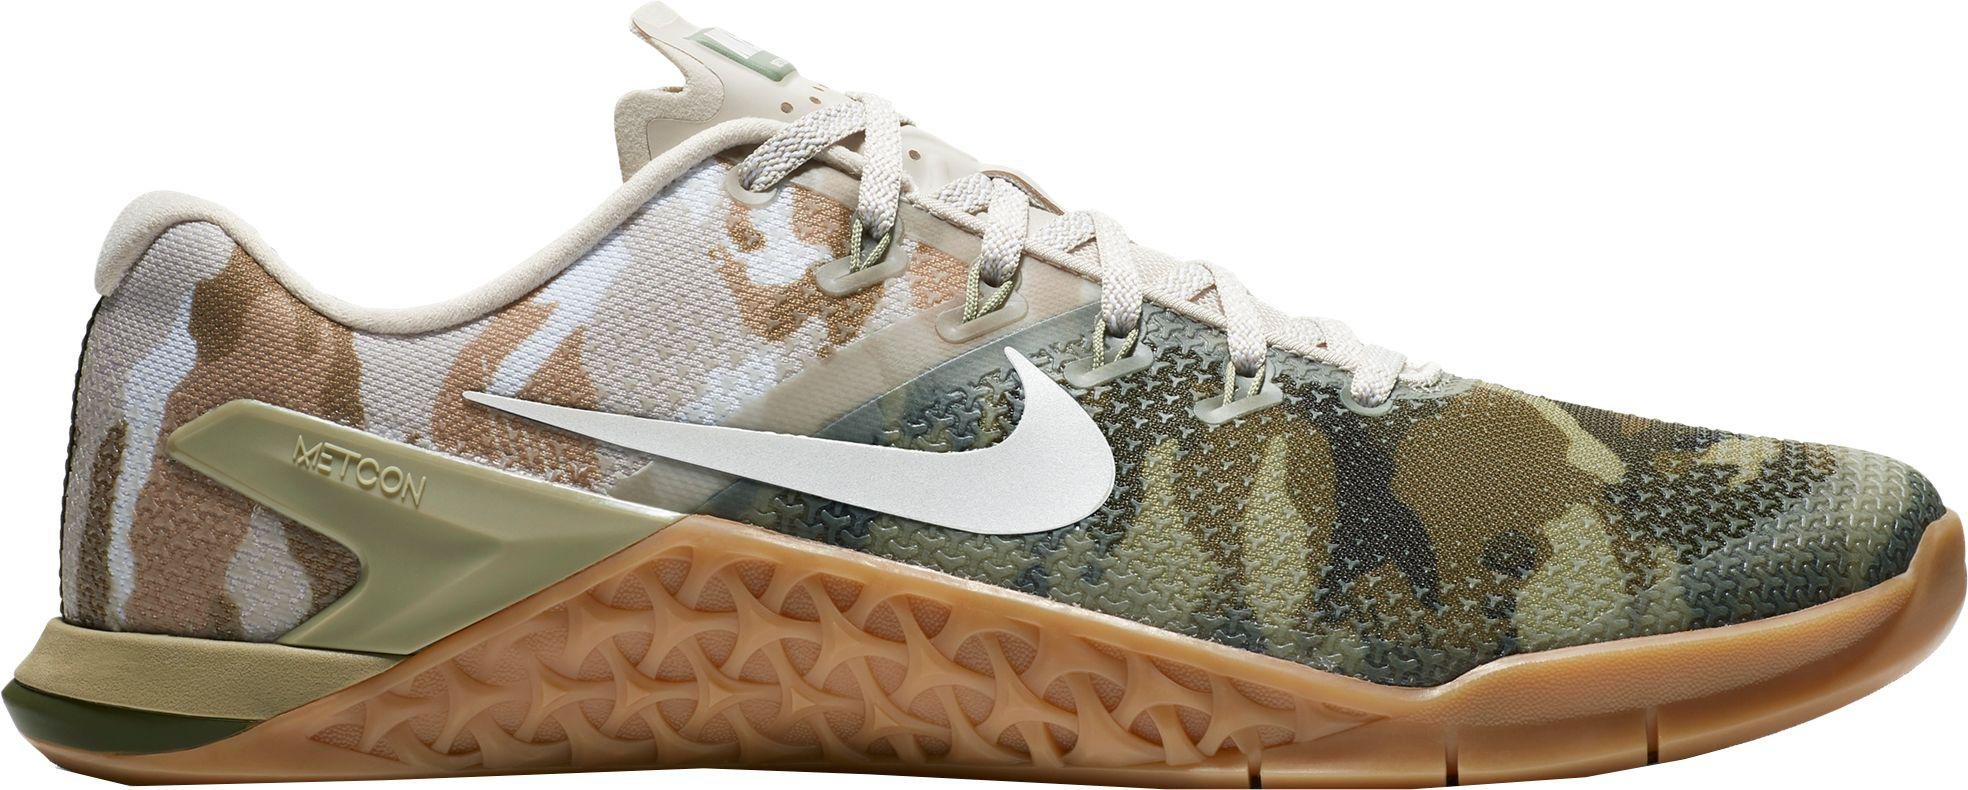 95211280acba Nike - Multicolor Metcon 4 Training Shoes for Men - Lyst